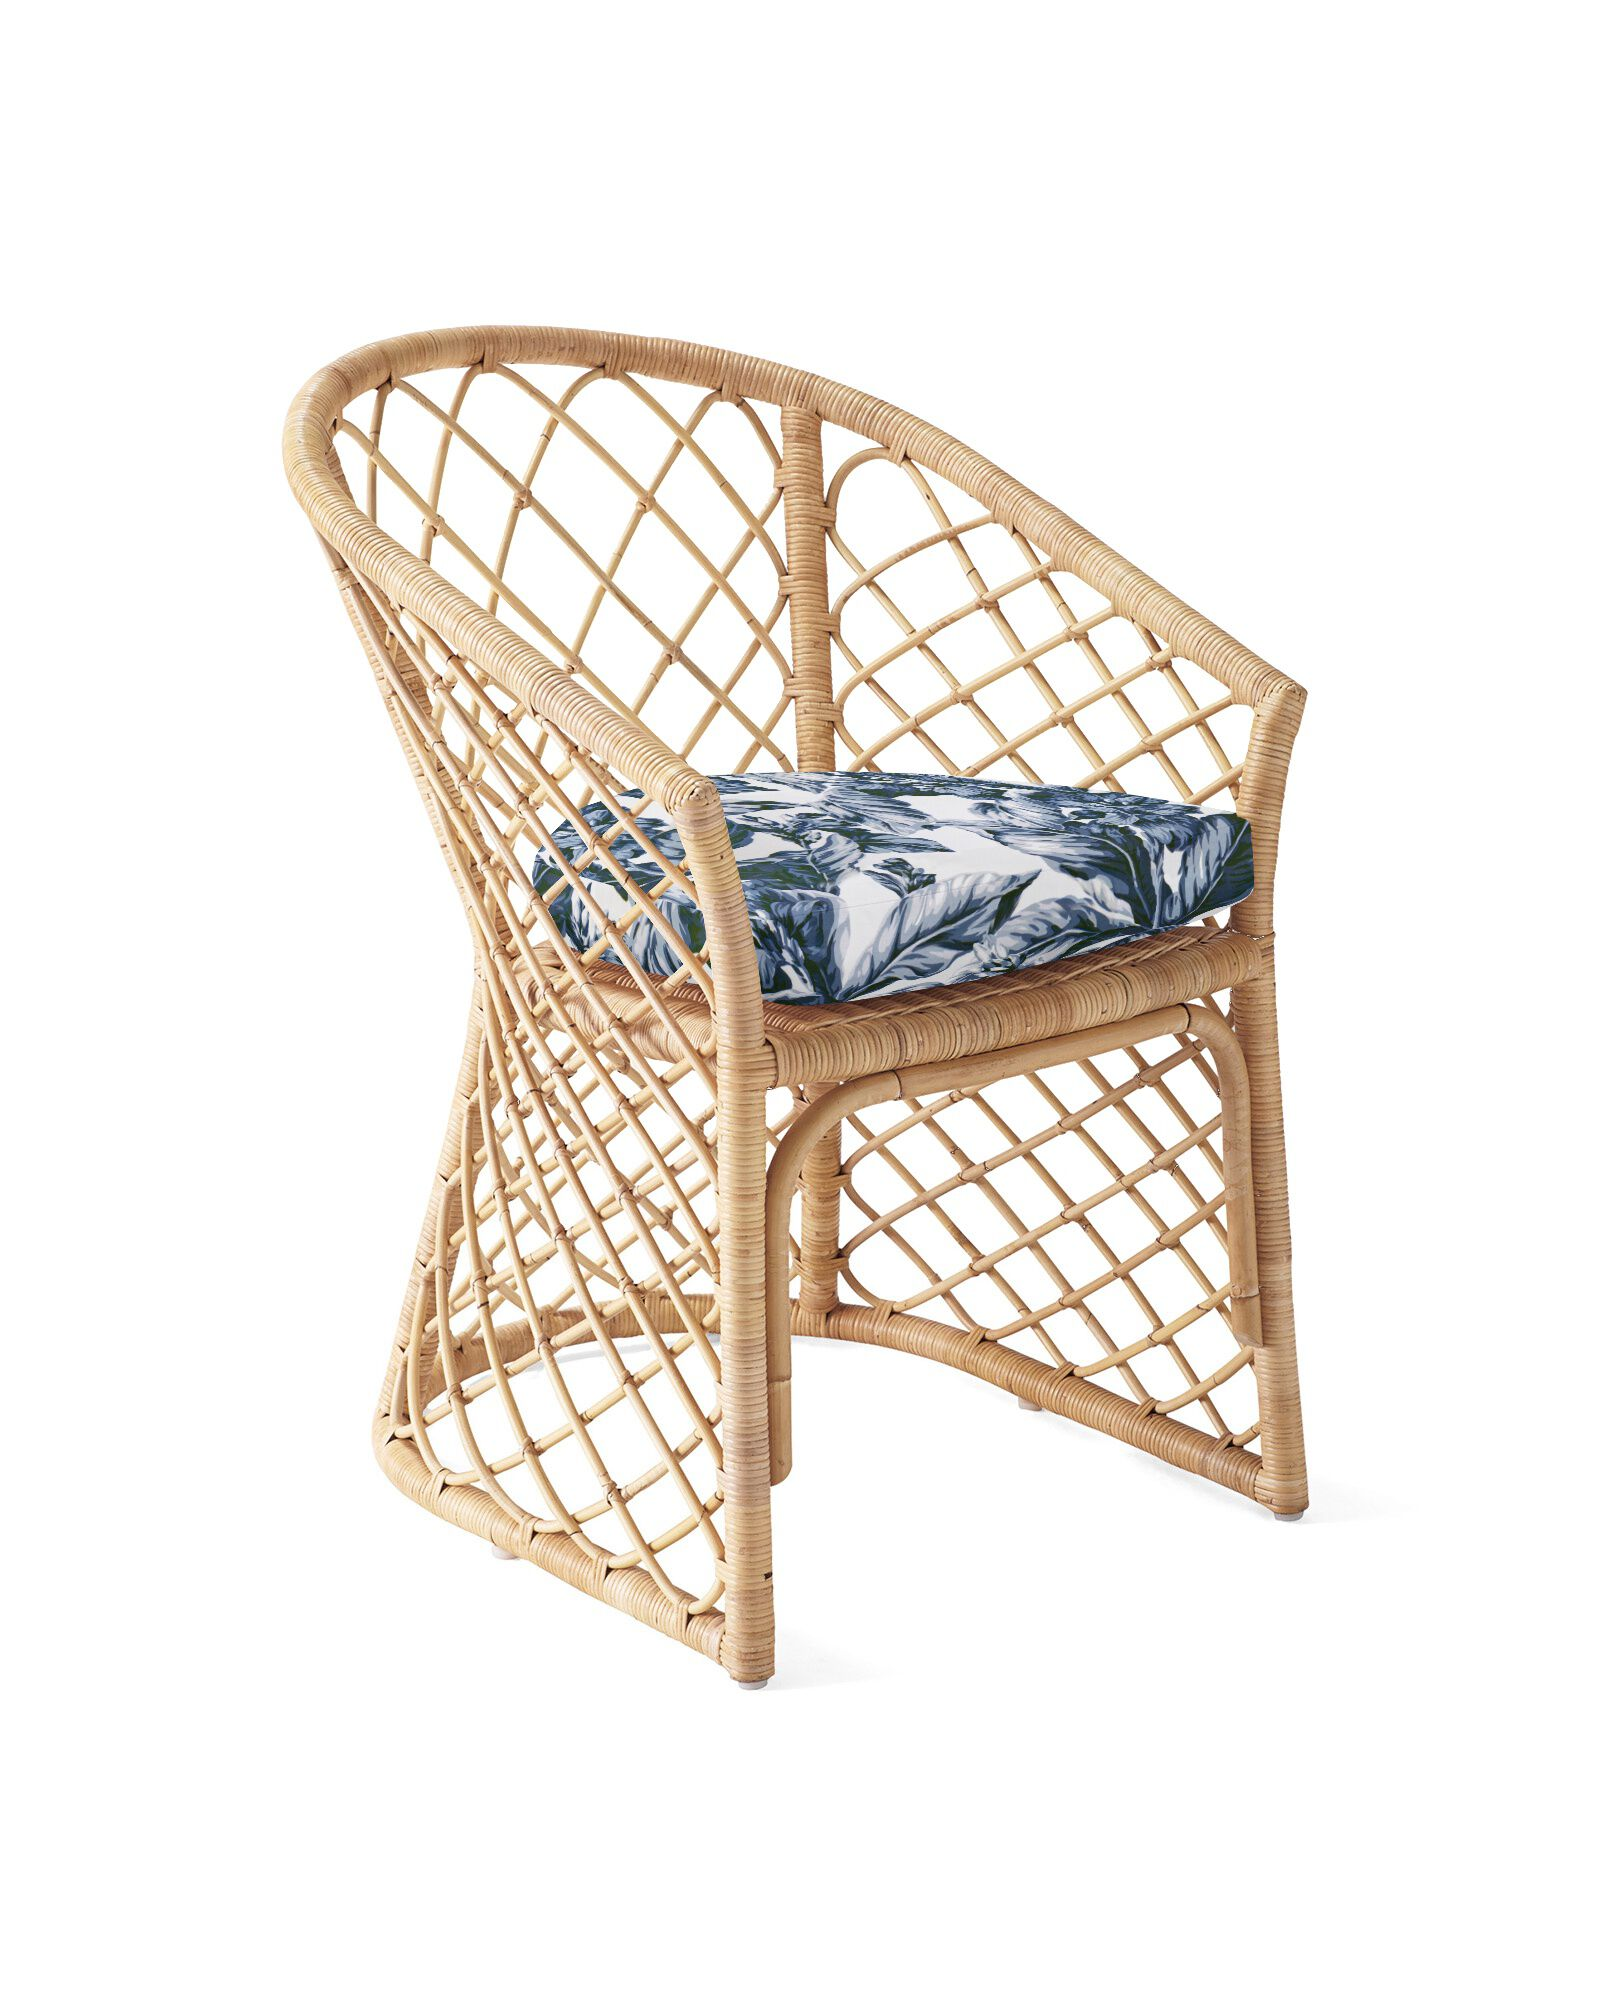 Cushion Cover for Avalon Dining Chair, Verano Linen - Navy